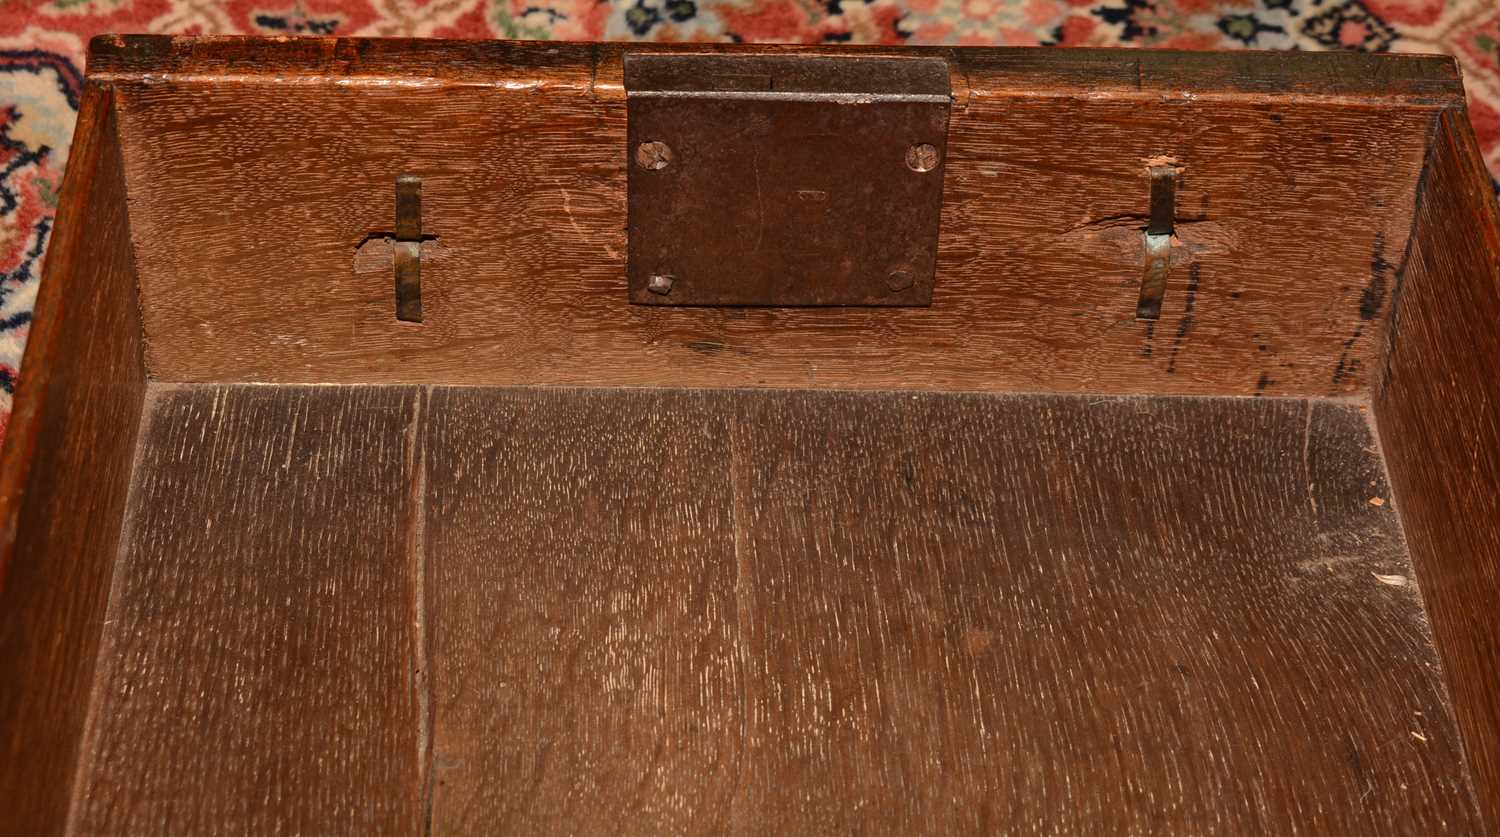 Early 18th Century walnut bachelors chest - Image 34 of 39